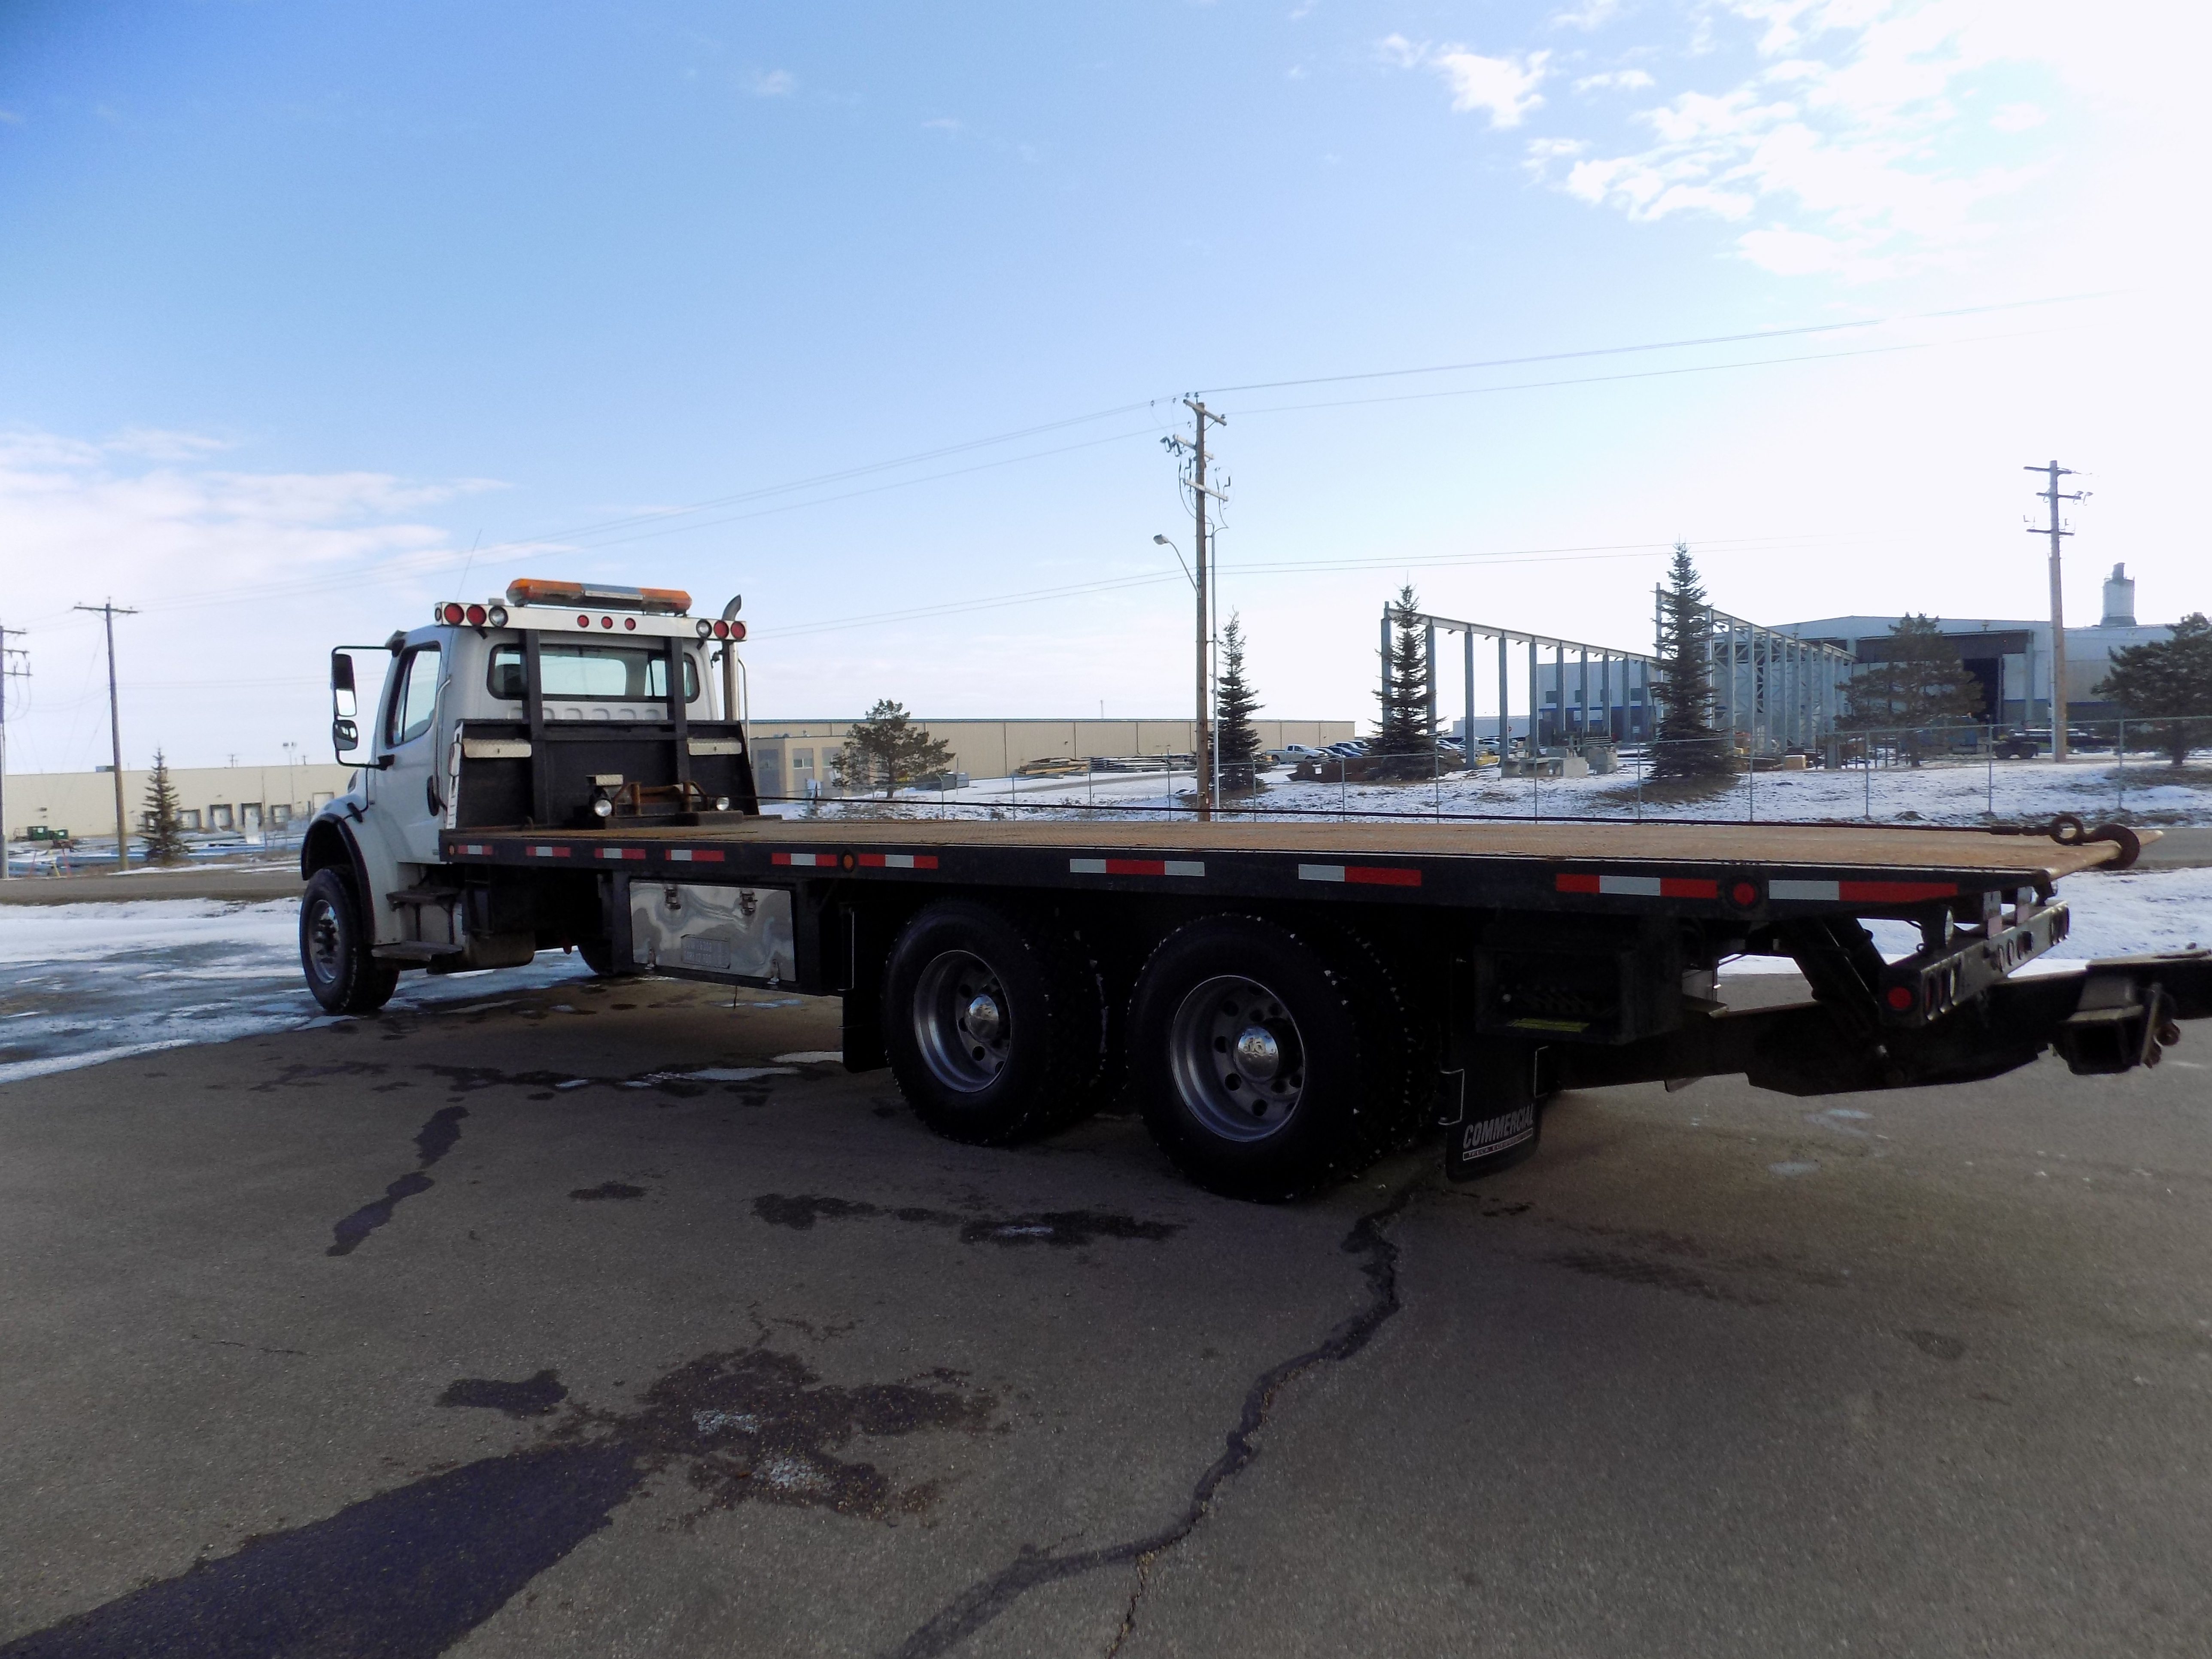 nrc 28 u0026 39  deck on freightliner m2